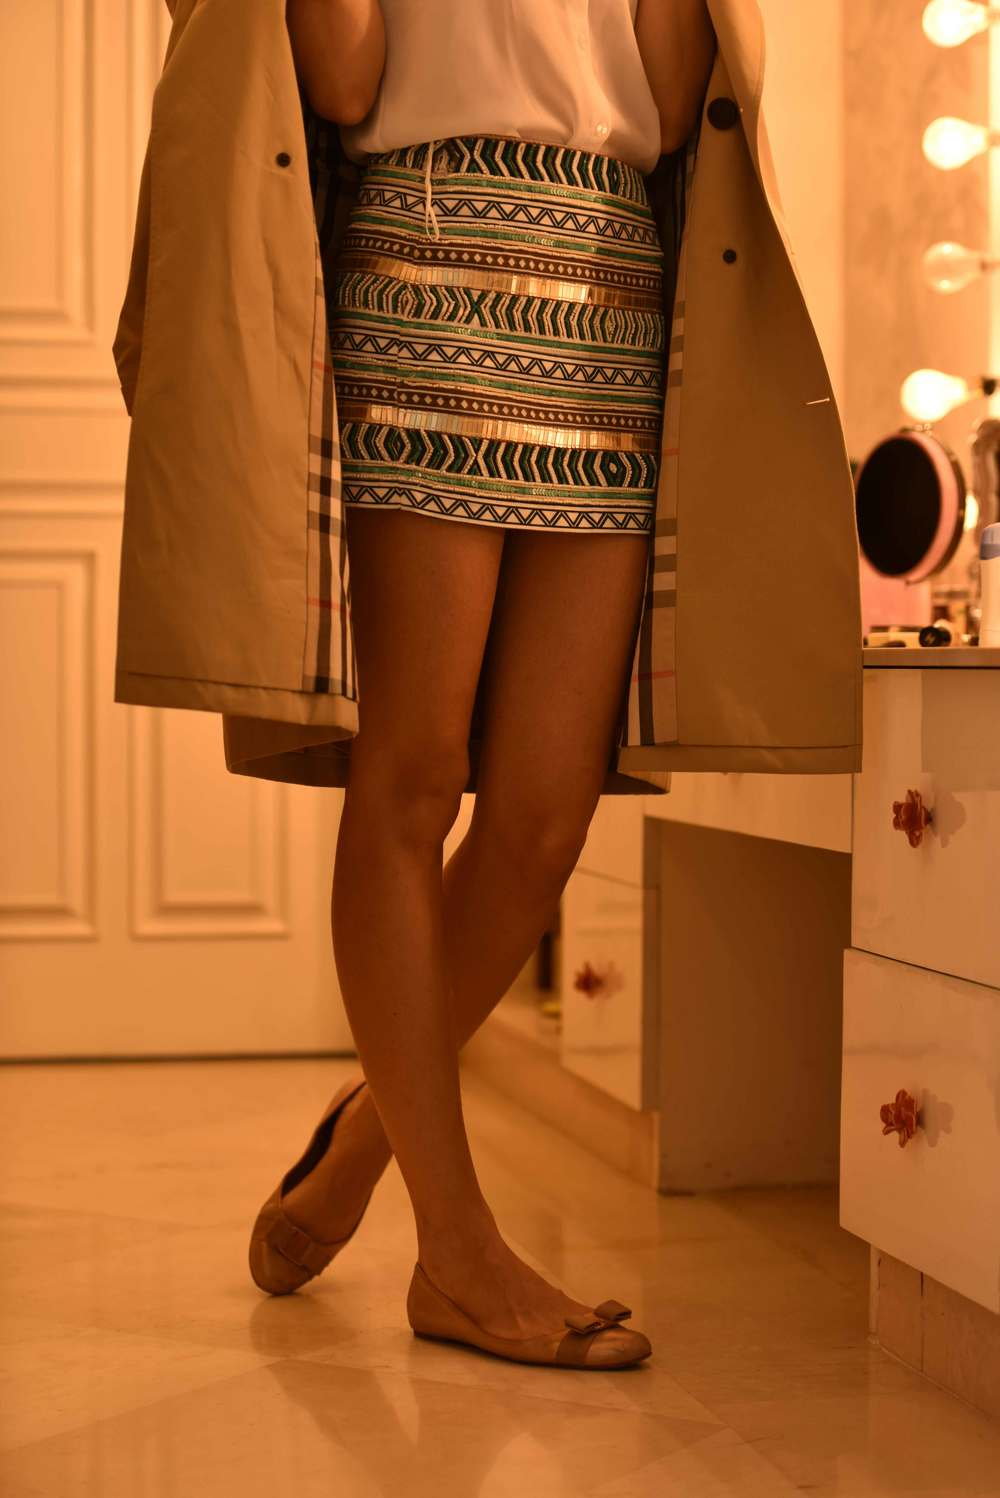 Zara mini-skirt, Ferragamo ballet flats and a Burberry trench. Image©gunjanvirk, Model: Mannat Dhaliwal.